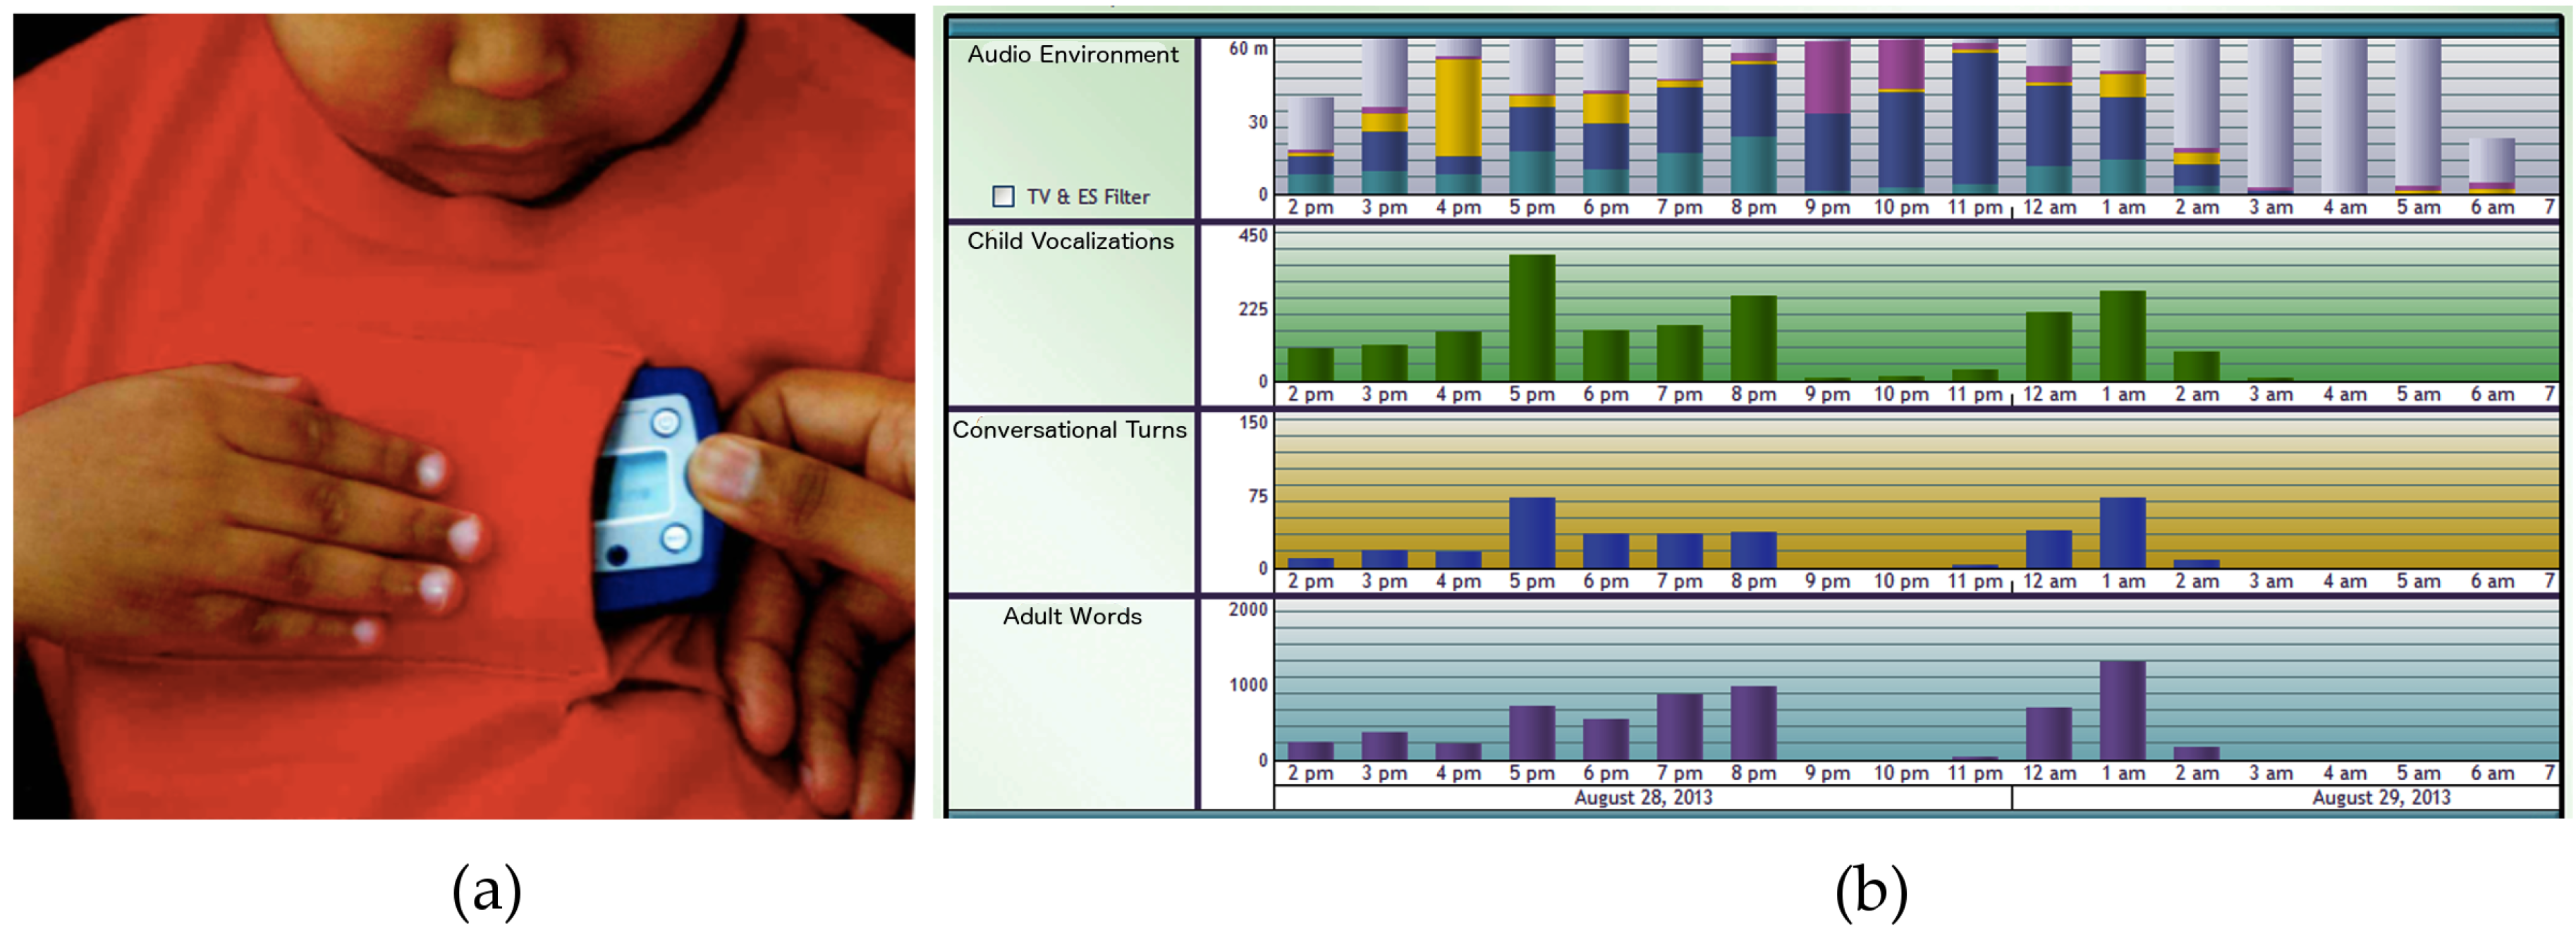 Screening For Autism Spectrum Disorders State Of The Art In Europe >> Sensors Free Full Text Sensing Technologies For Autism Spectrum